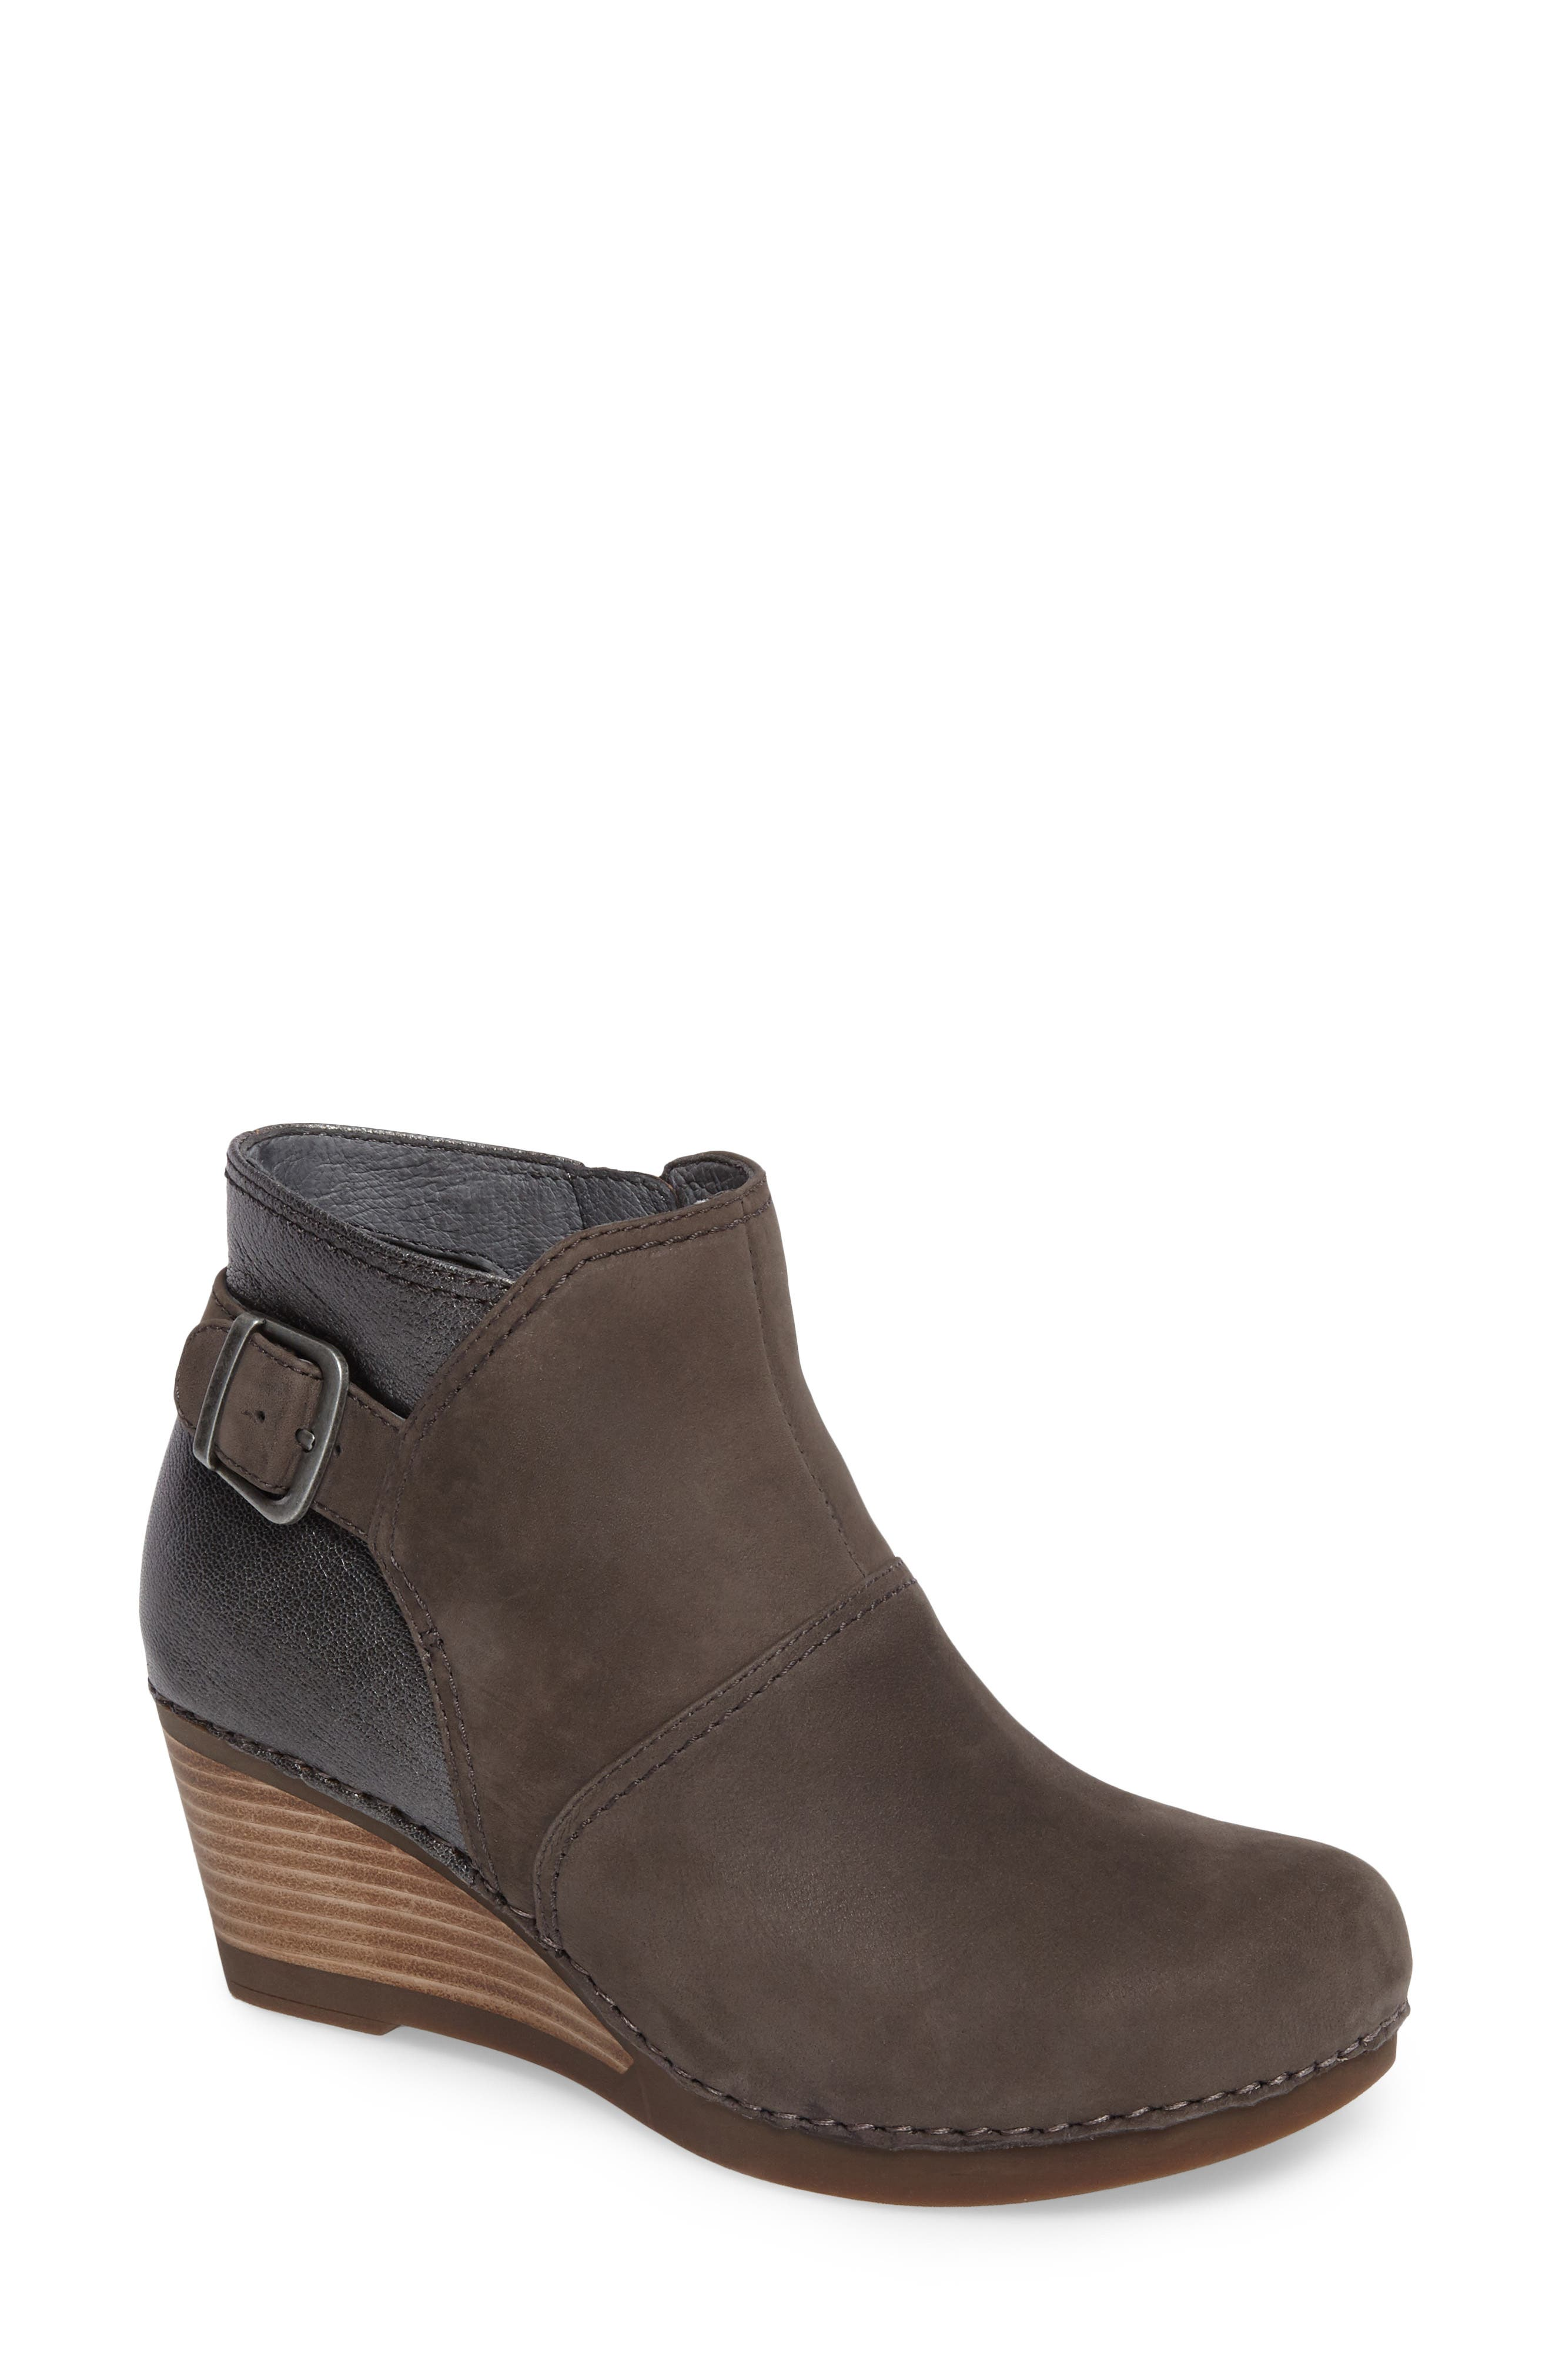 'Shirley' Wedge Bootie,                             Main thumbnail 3, color,